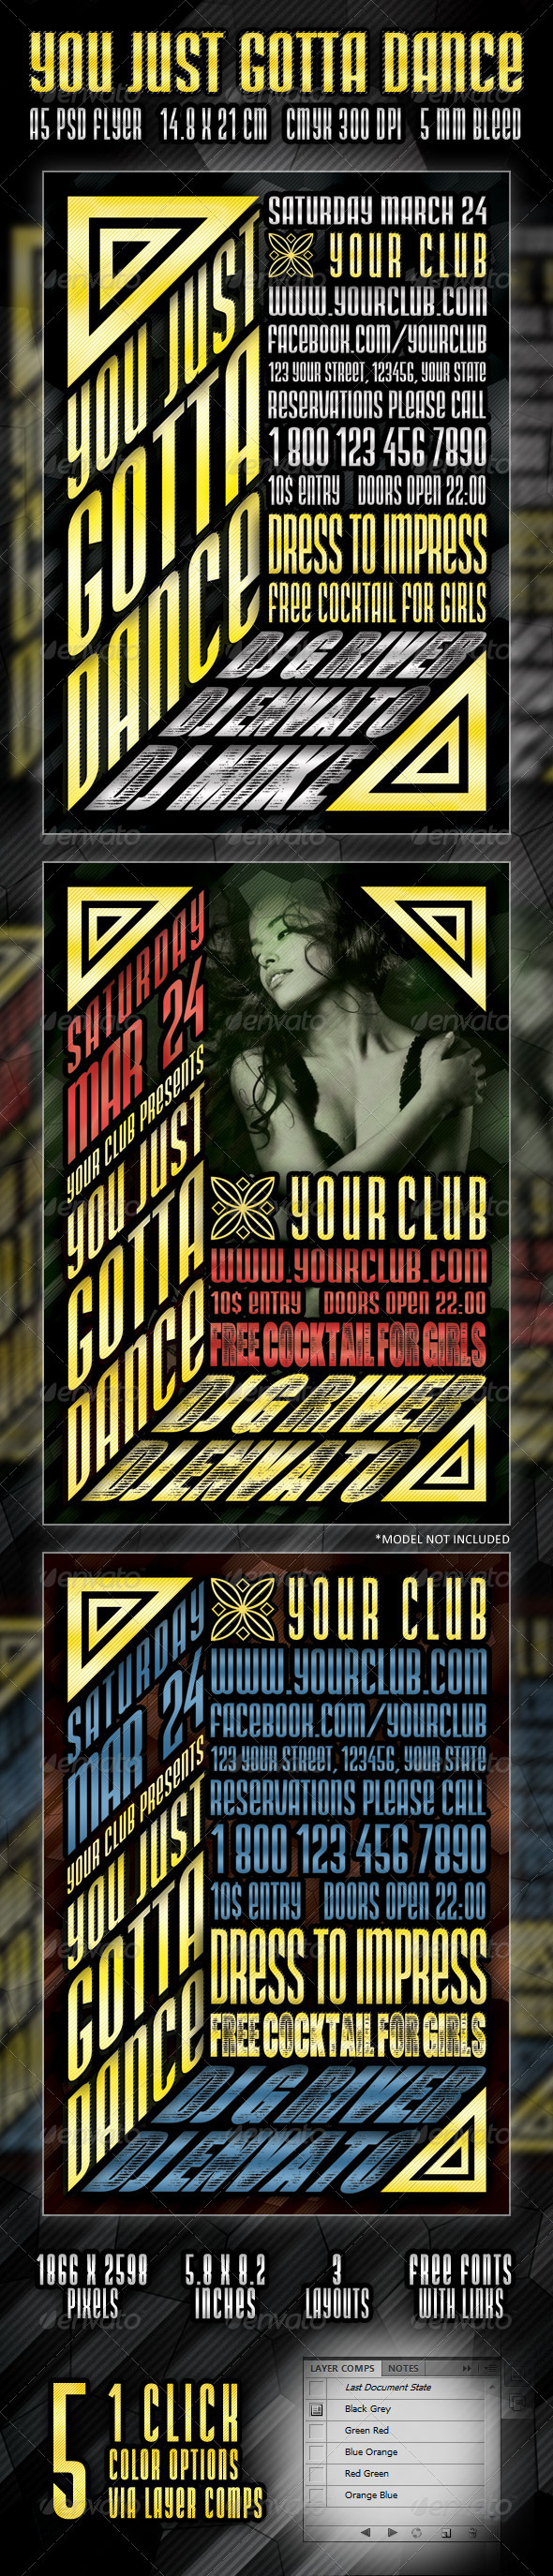 You just Gotta Dance Flyer - Clubs & Parties Events